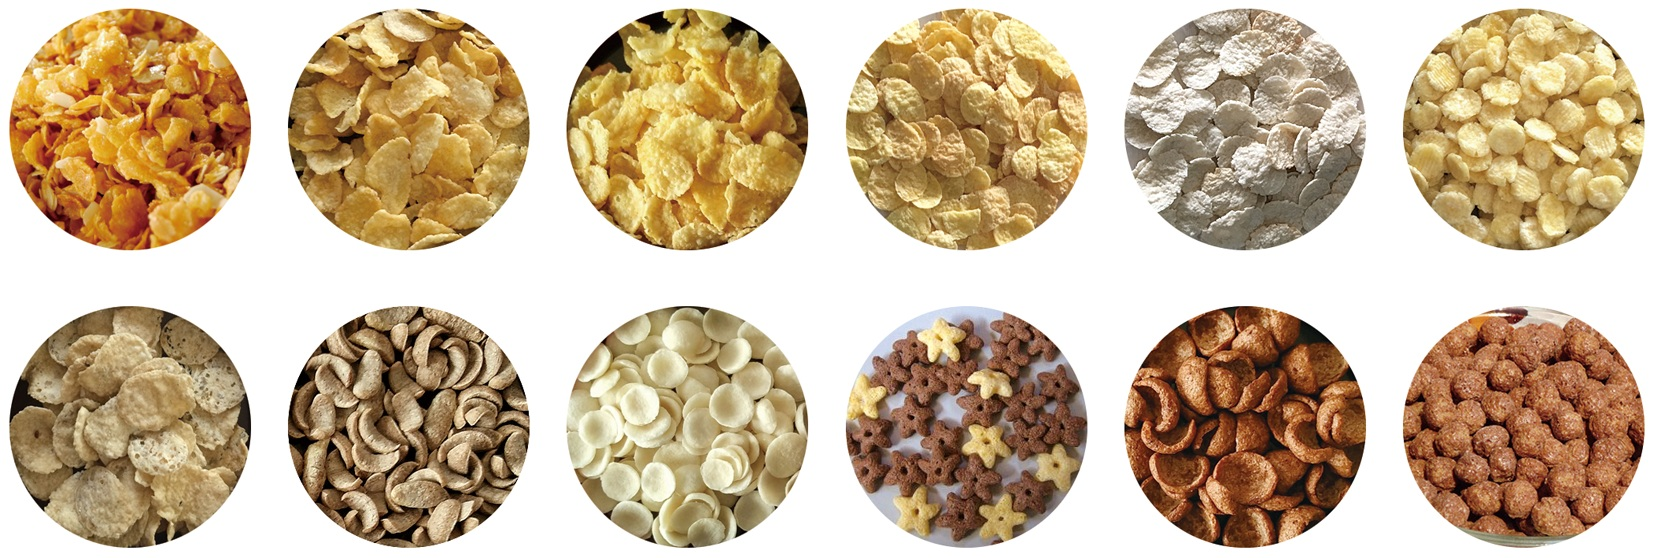 Puffed corn flakes breakfast cereals snacks making machine